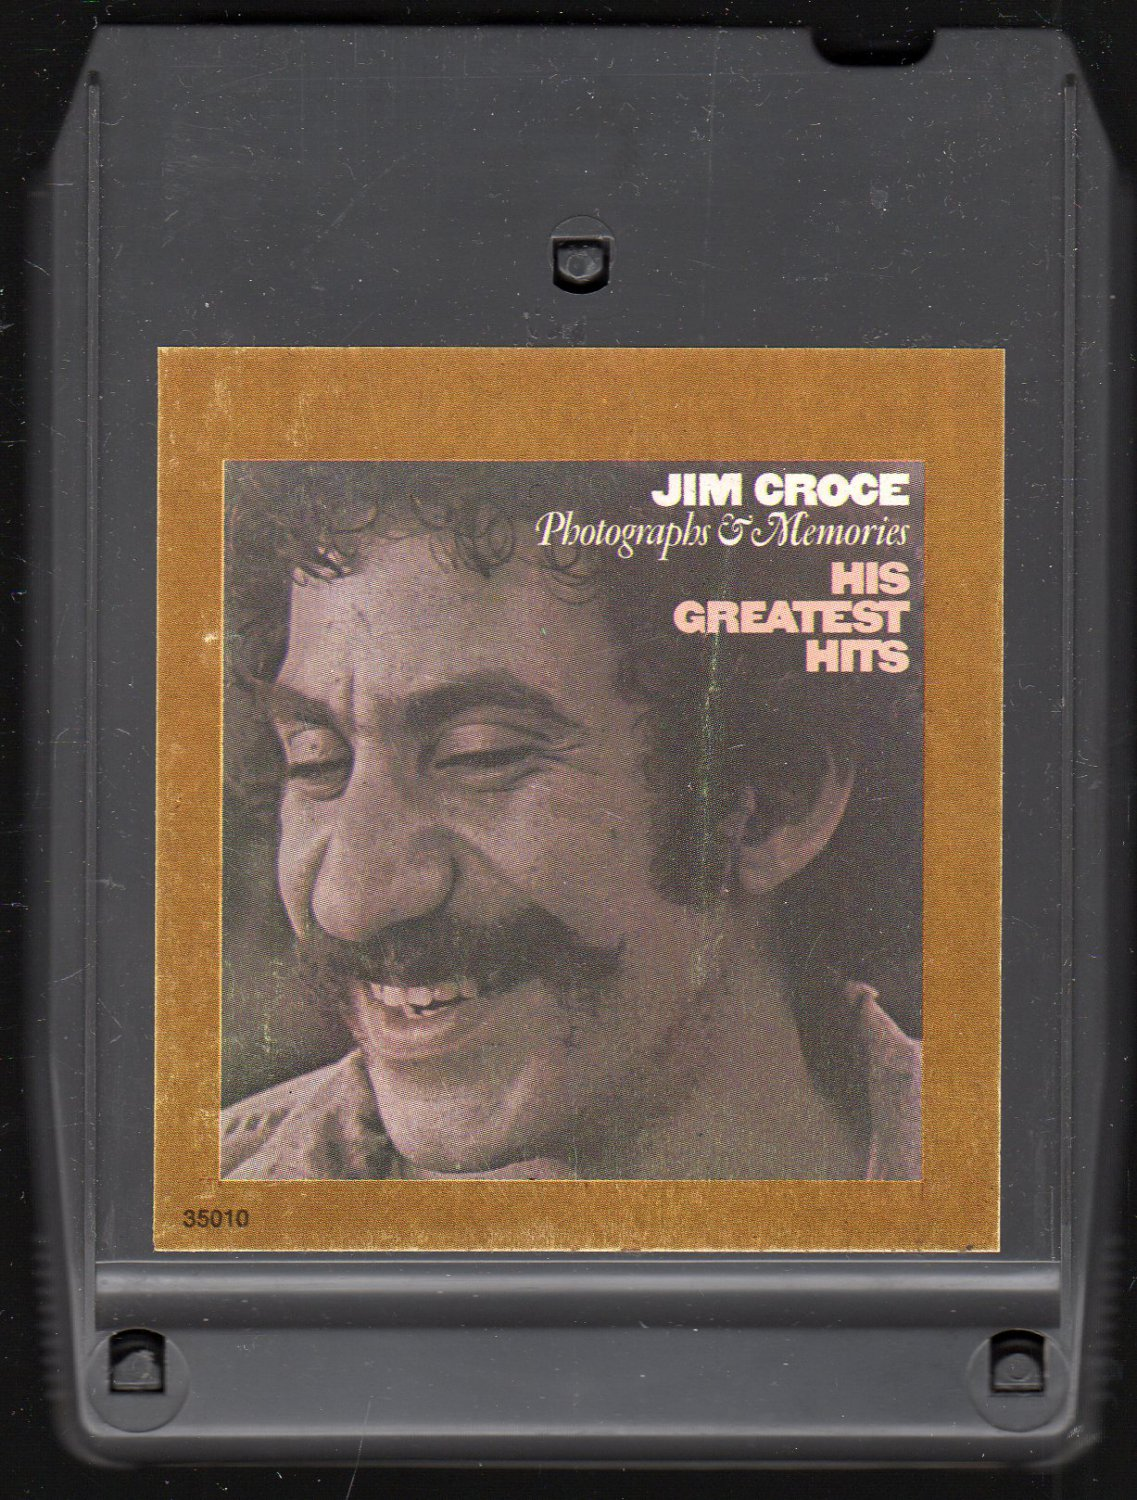 Jim Croce - Photographs & Memories His Greatest Hits 1974 LIFESONG A12 8-track tape